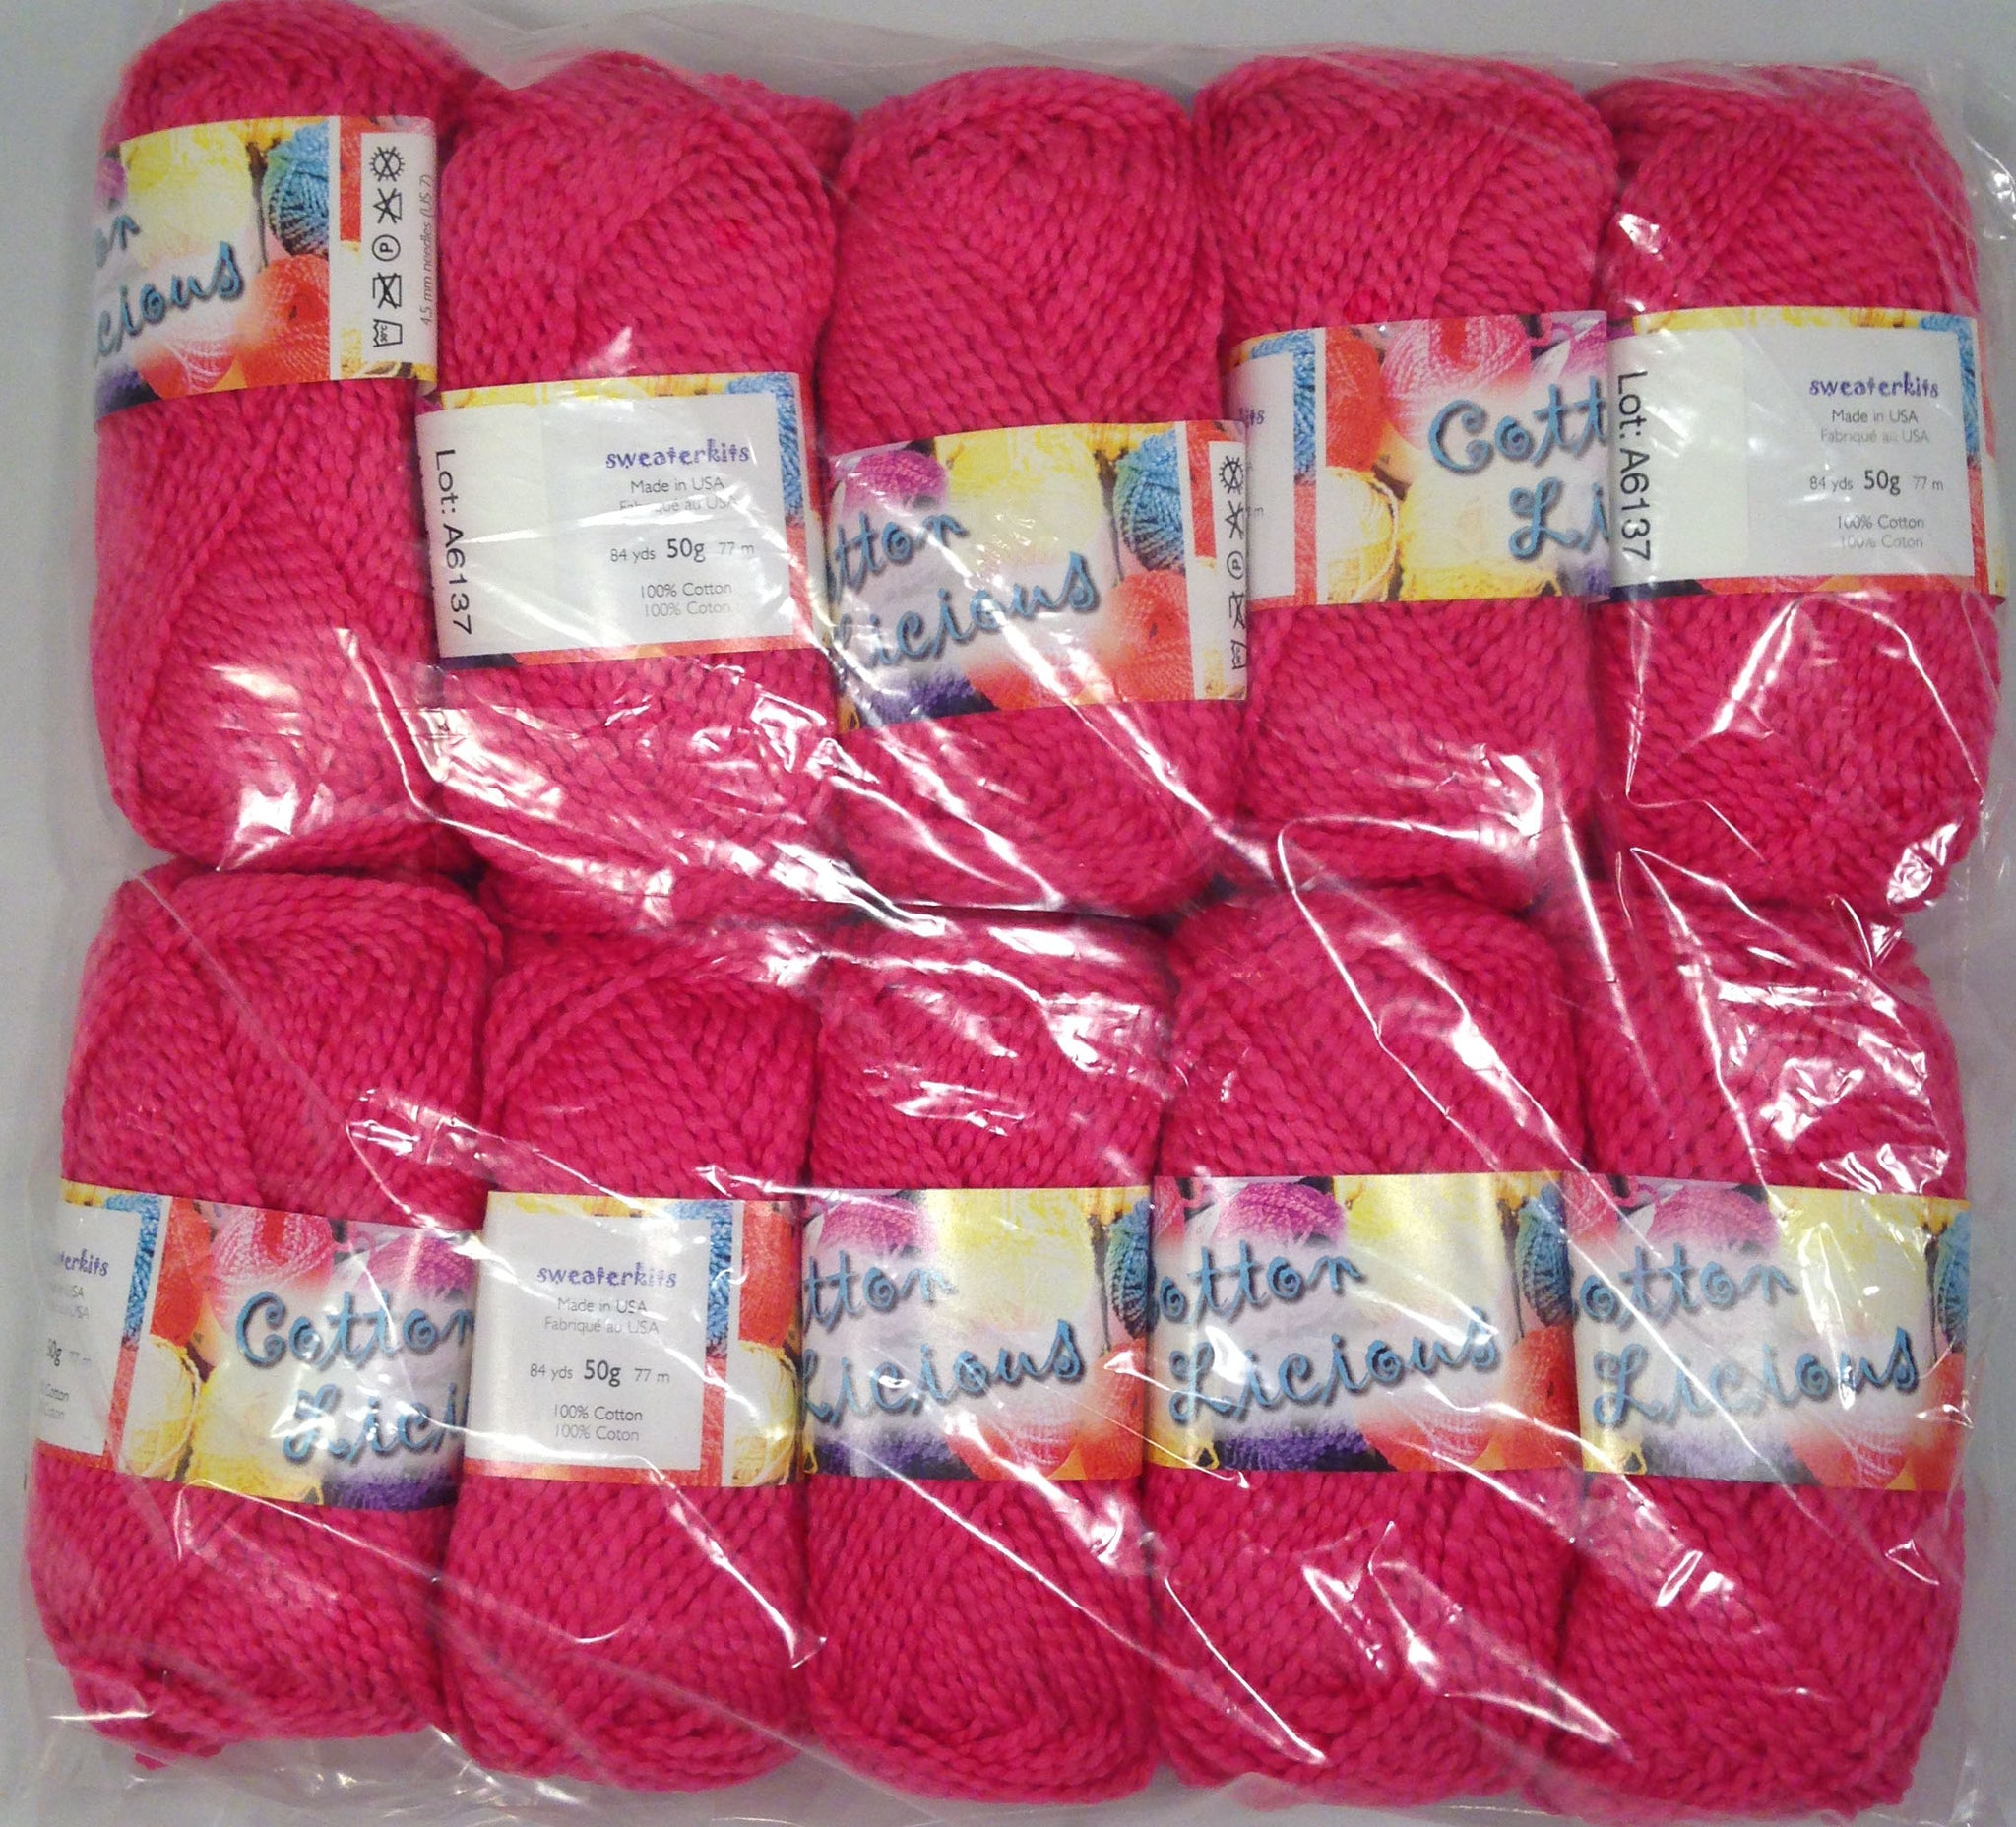 CottonLicious Hot Pink 10 Ball Pack